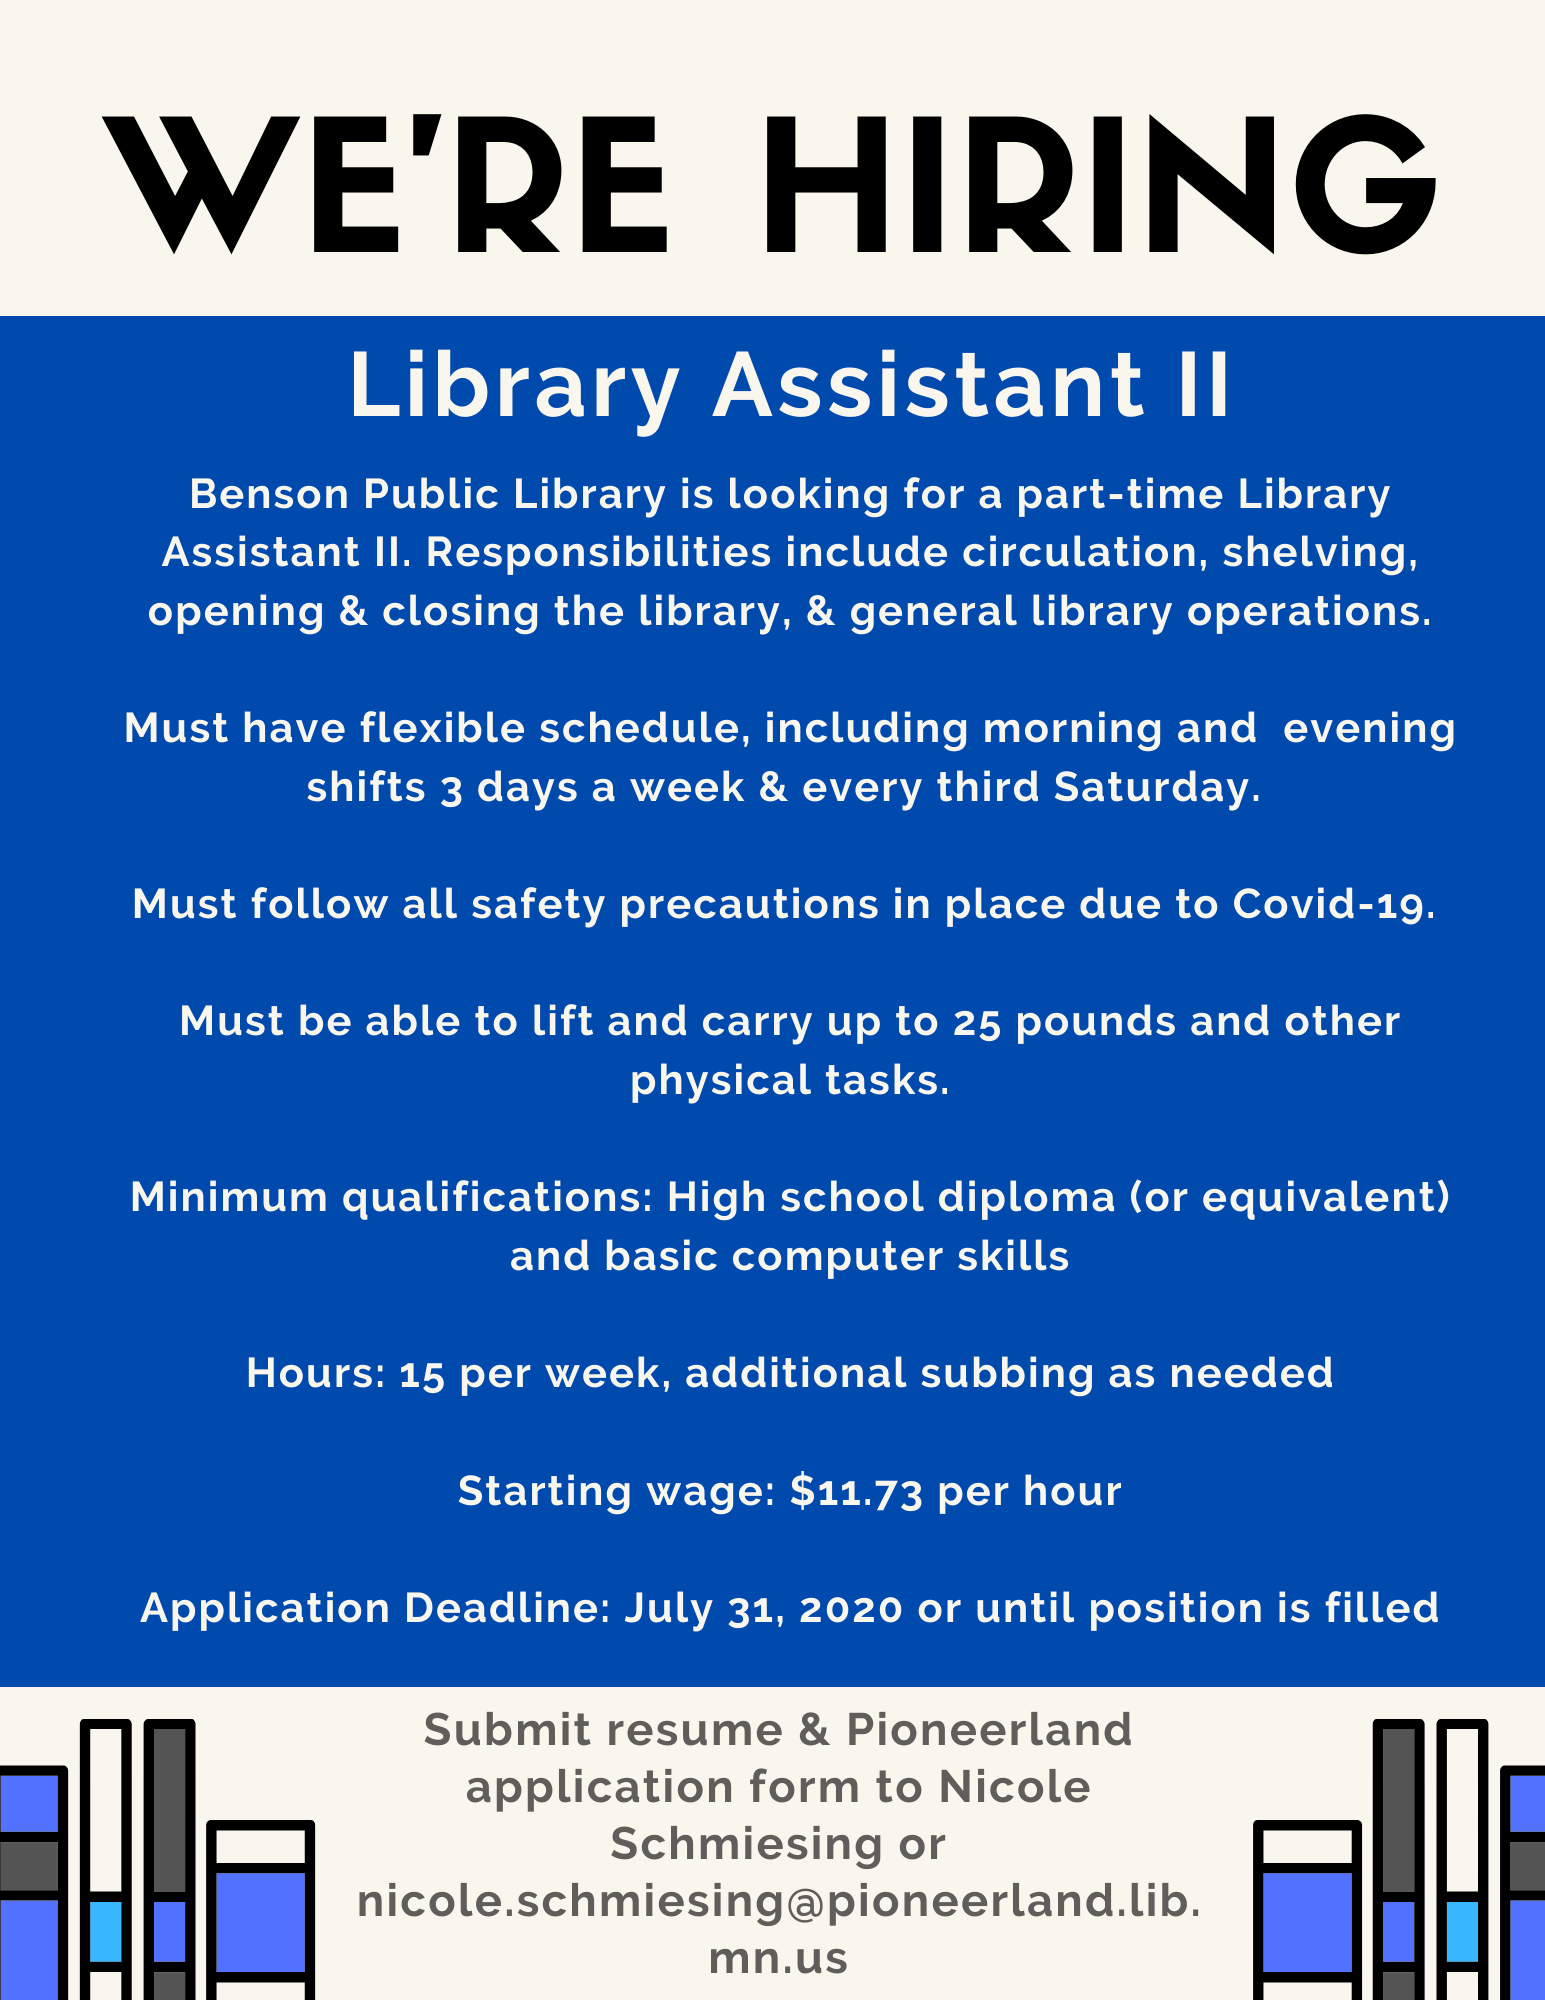 We are hiring a Library Assistant II. 15 hours per week. Responsibilities include circulation, shelving, opening and closing the library, and general library operations. Candidates must have flexible schedule and be able to work morning and evening shifts 3 days a week and every 3rd Saturday. Candidates must be willing to follow all safety precautions in place due to Covid-19 and must be able to lift an carry up to 25 pounds and other physical tasks. Minimum Qualifications: High school diploma and basic computer skills. Starting wage $11.73 per hour. Send Pioneerland Application form and resume to Nicole Schmiesing at nicole.schmiesing@pioneerland.lib.mn.us before July 31,2020